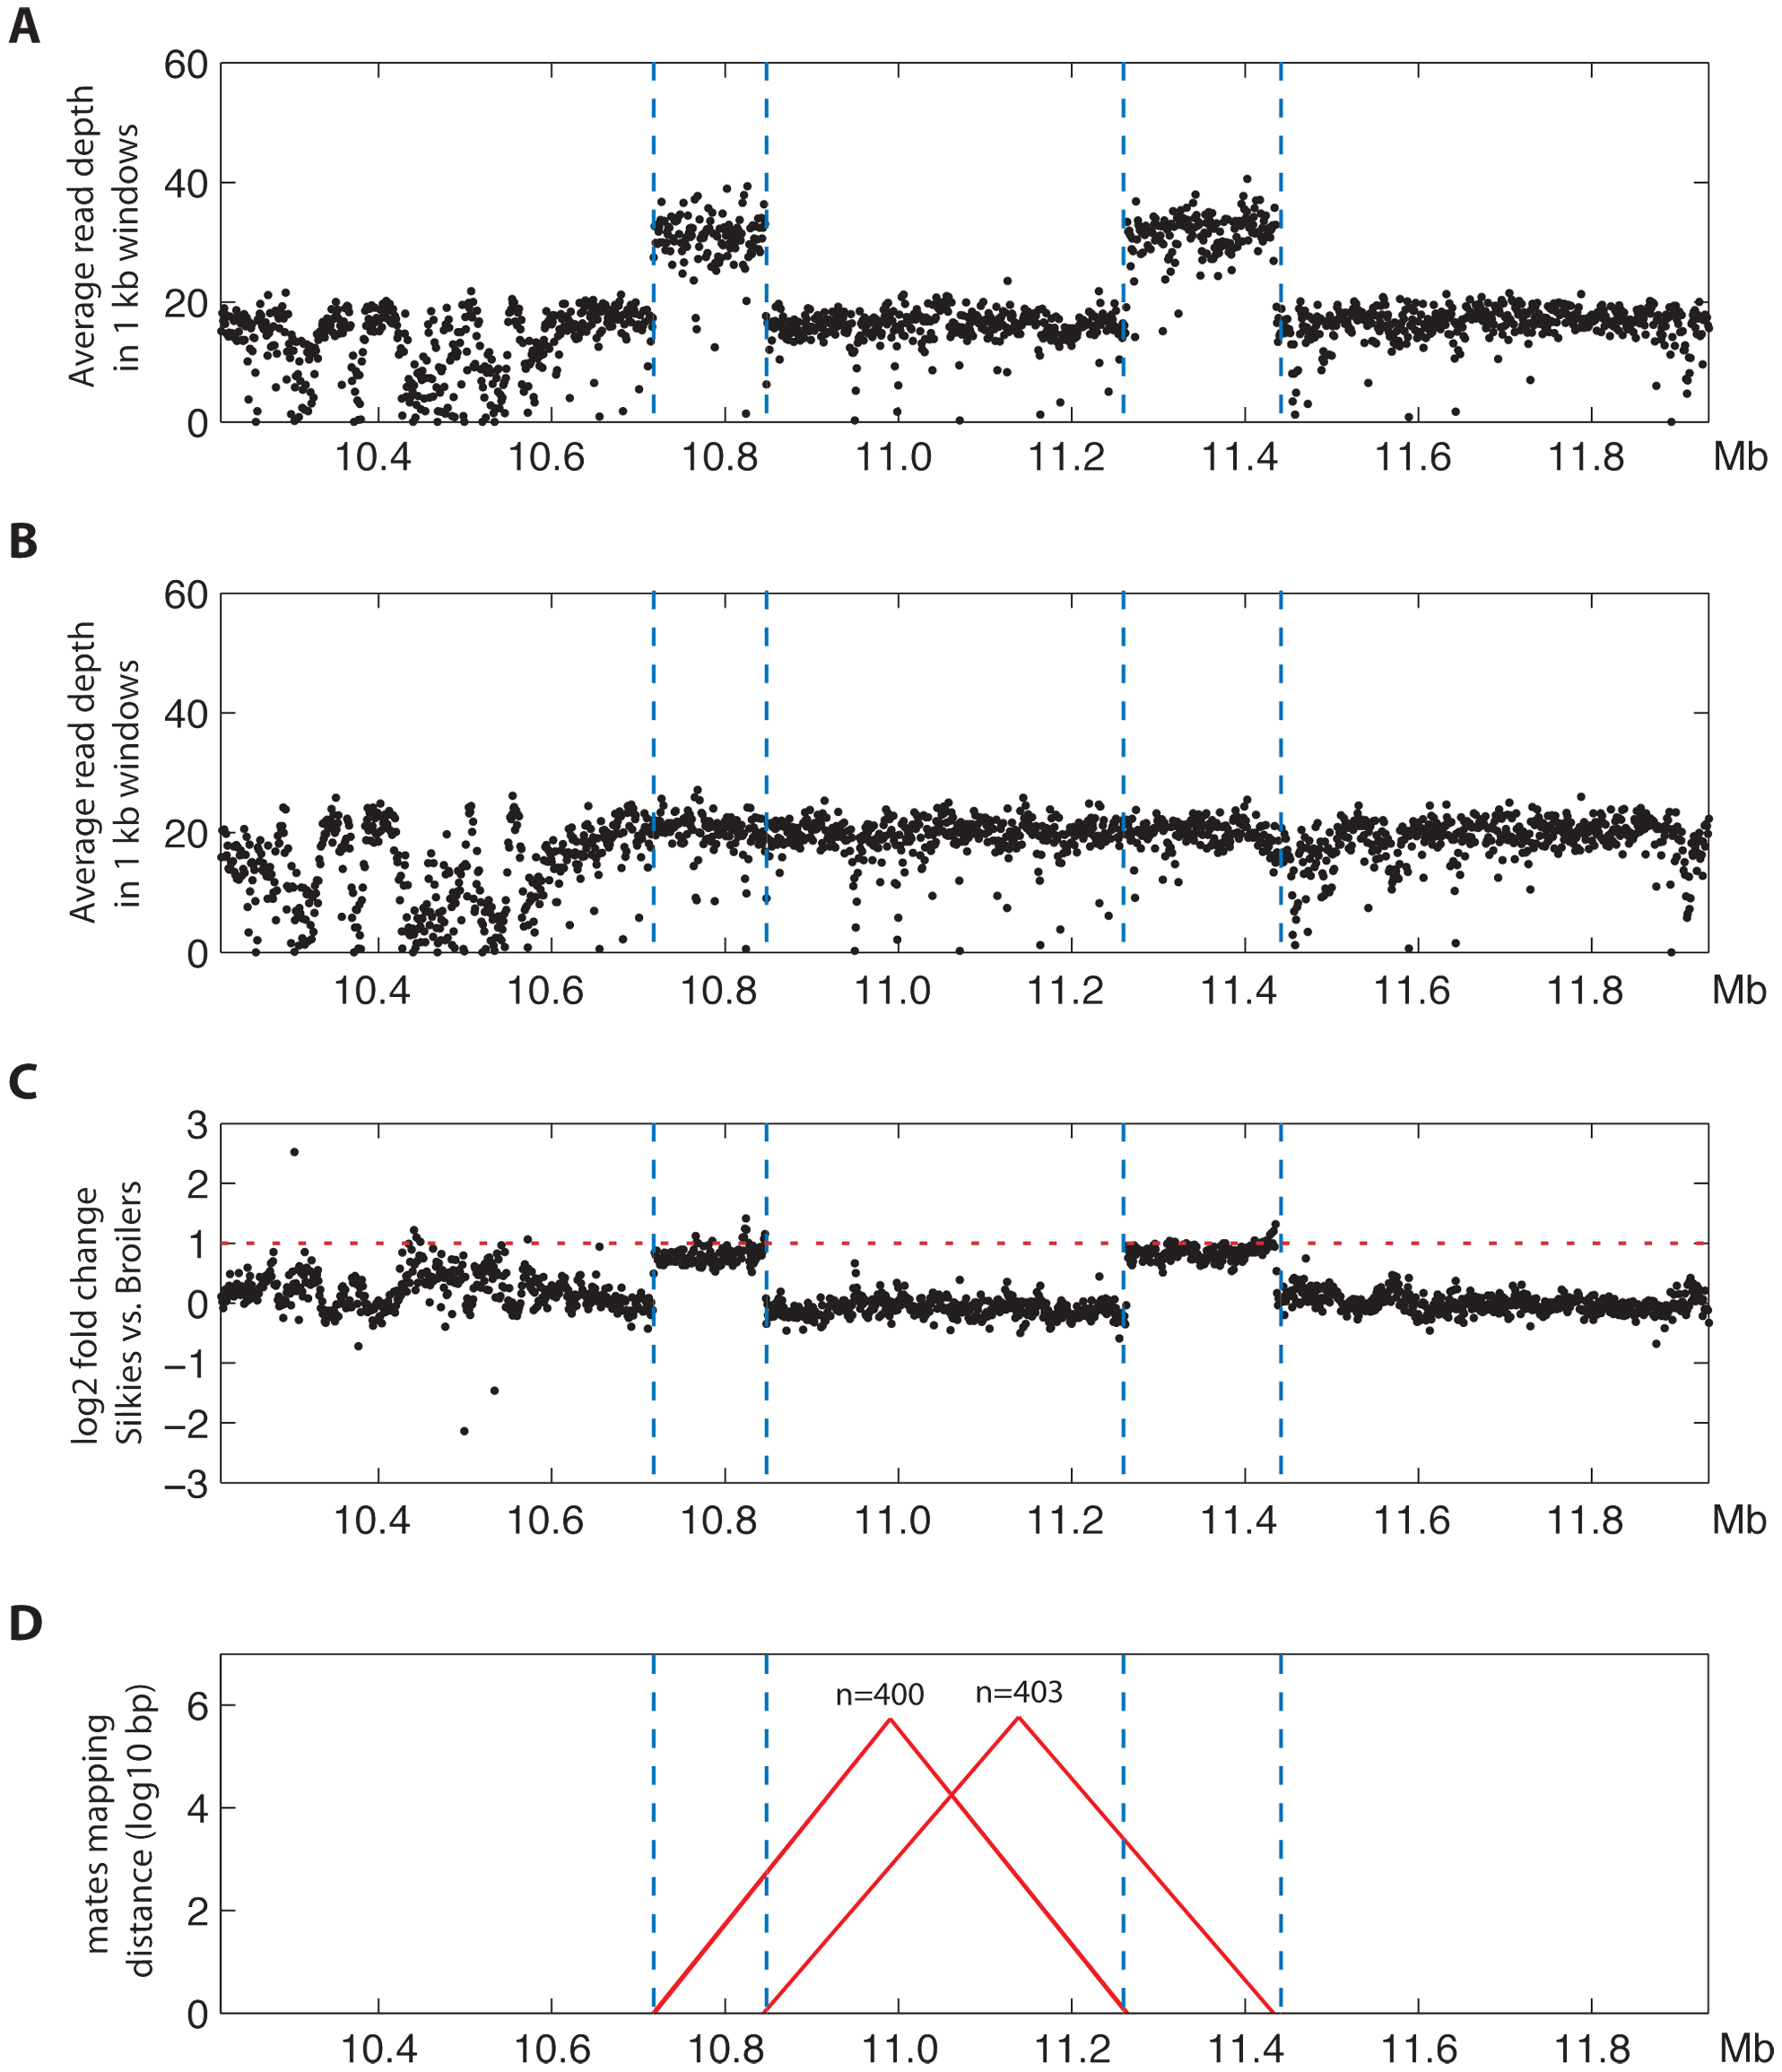 Massively parallel sequencing confirms the inverted duplication corresponding to the FM locus.